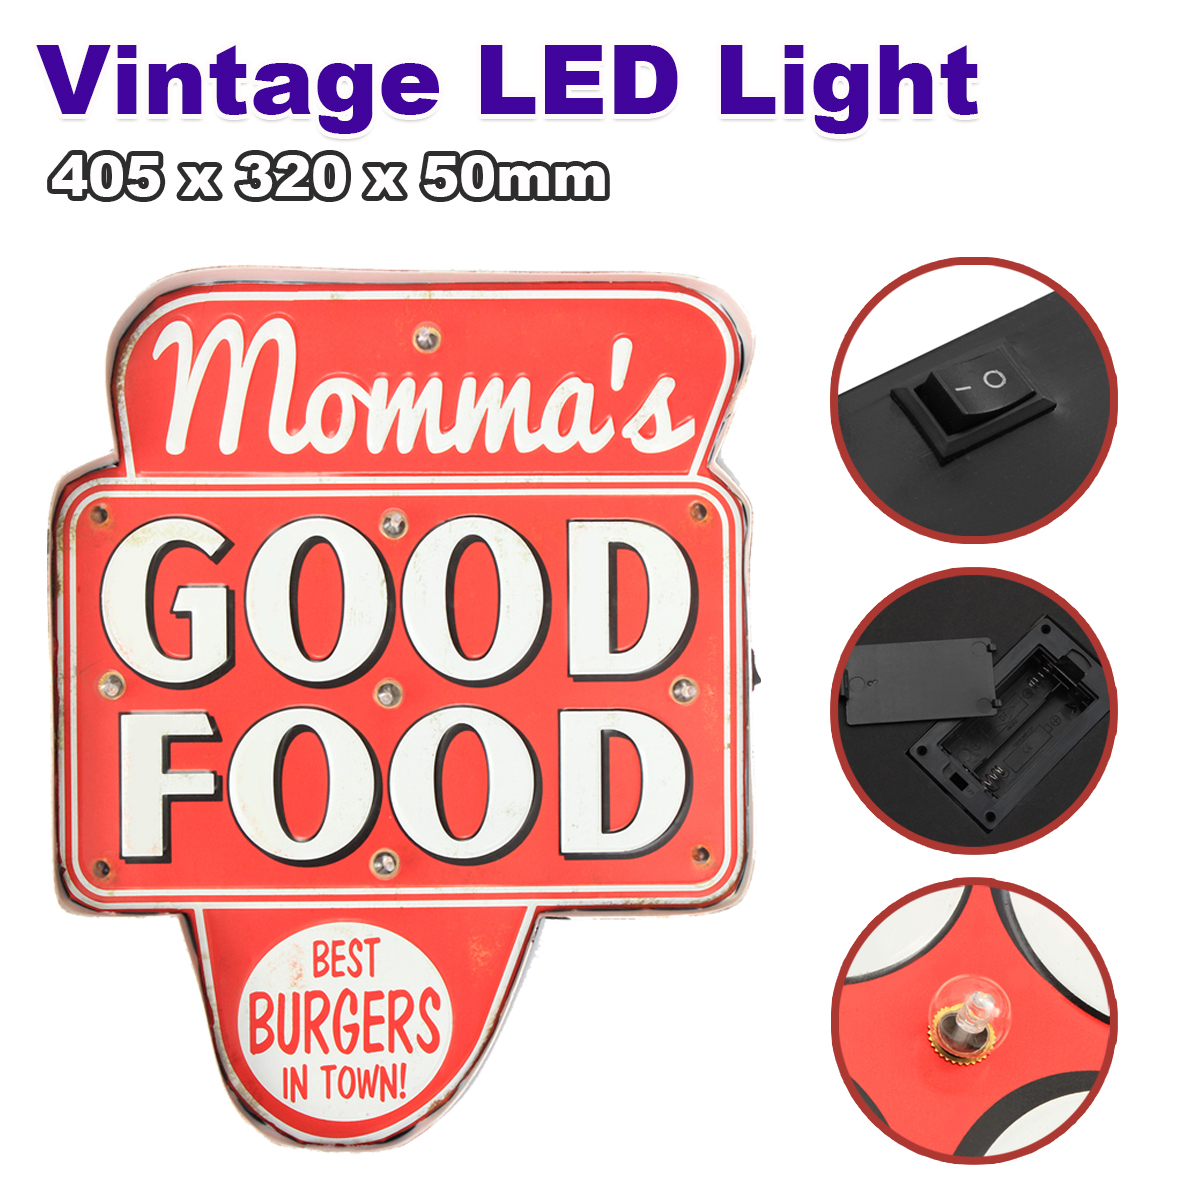 LED Mental Light Vintage Good Food Sign Bar Game Room Wall Hanging Decoration Hand Crafted Mental аксессуар защитное стекло sony xperia e4g solomon